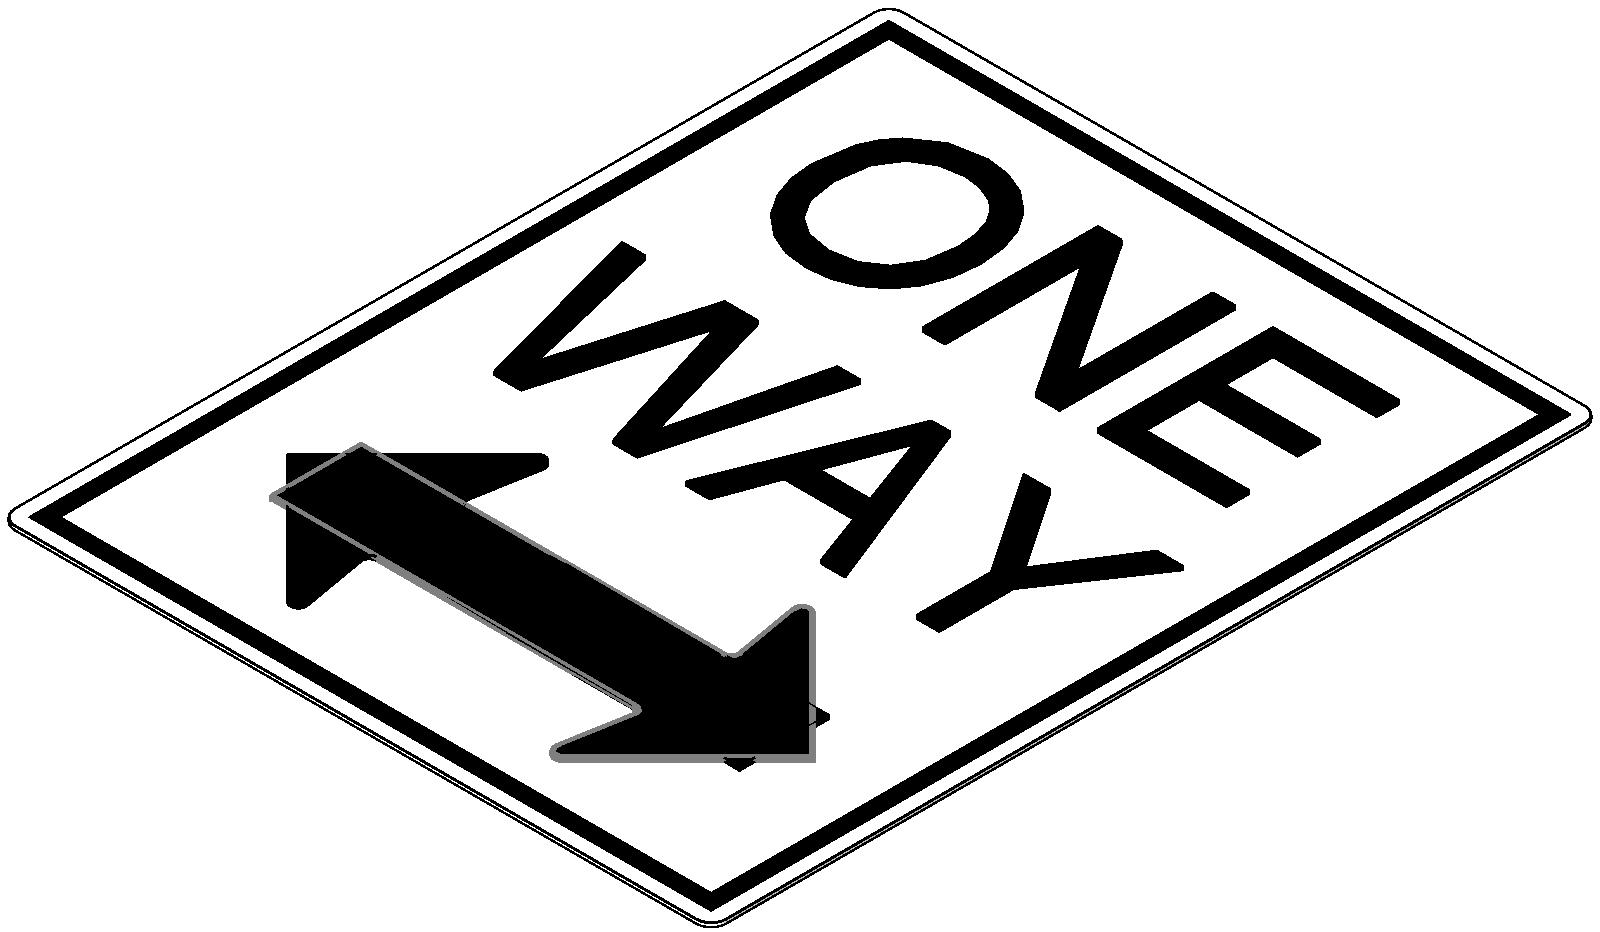 One Way Signs   Clipart Best